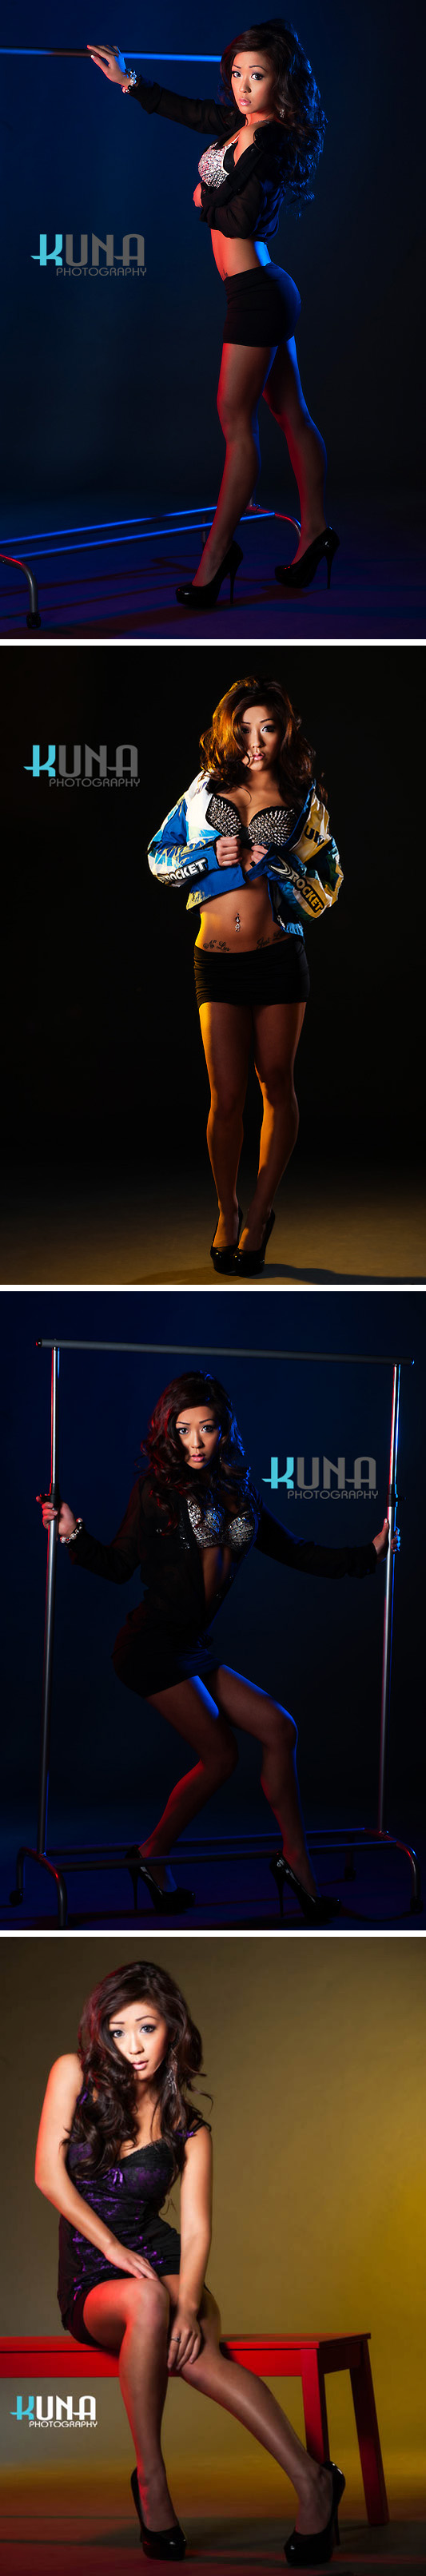 Male and Female model photo shoot of Kuna Photography Group and debbieL in Studio